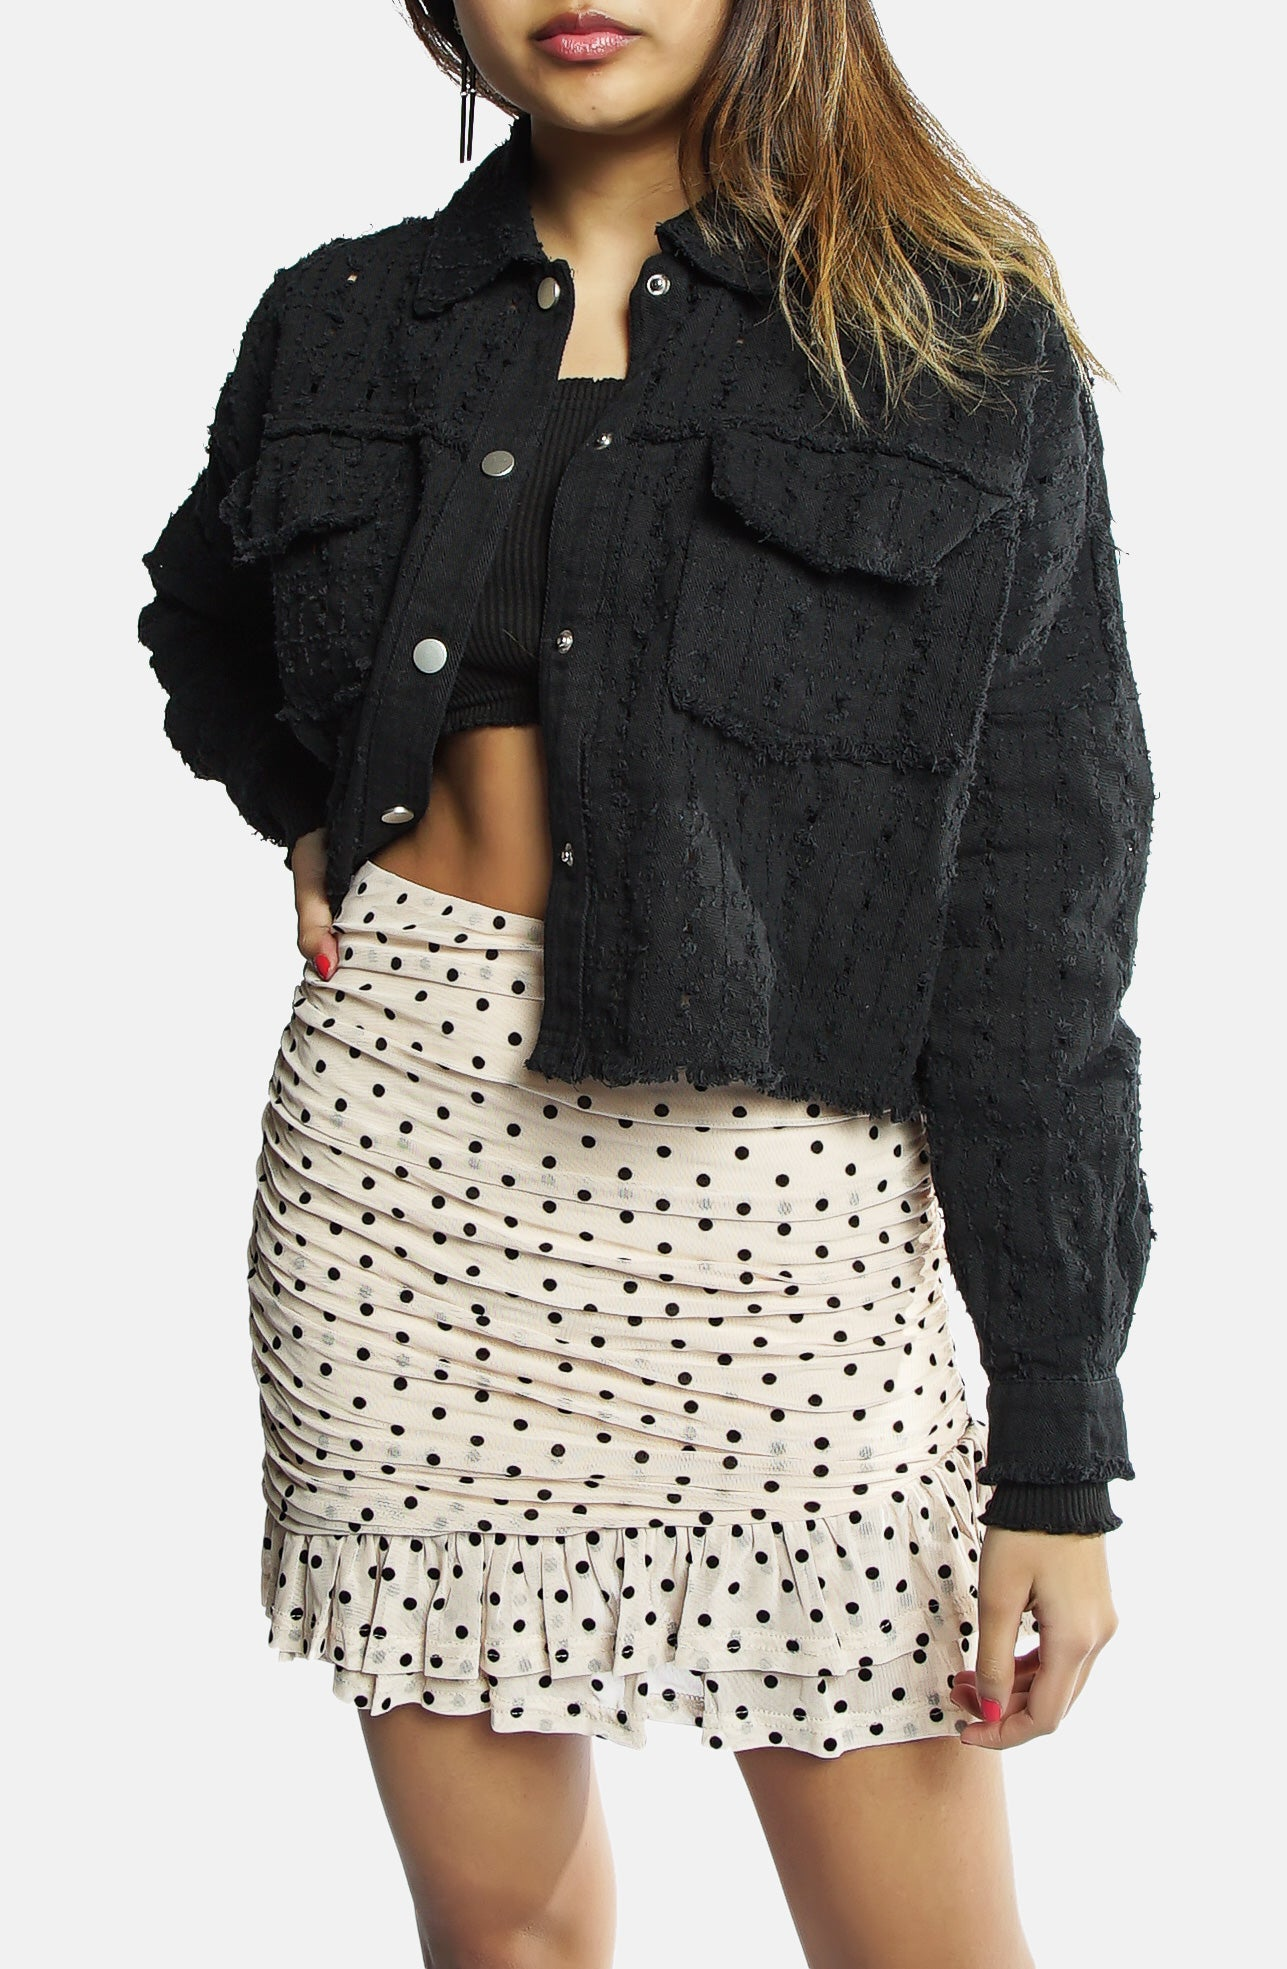 Tina Etched Black Denim Jacket